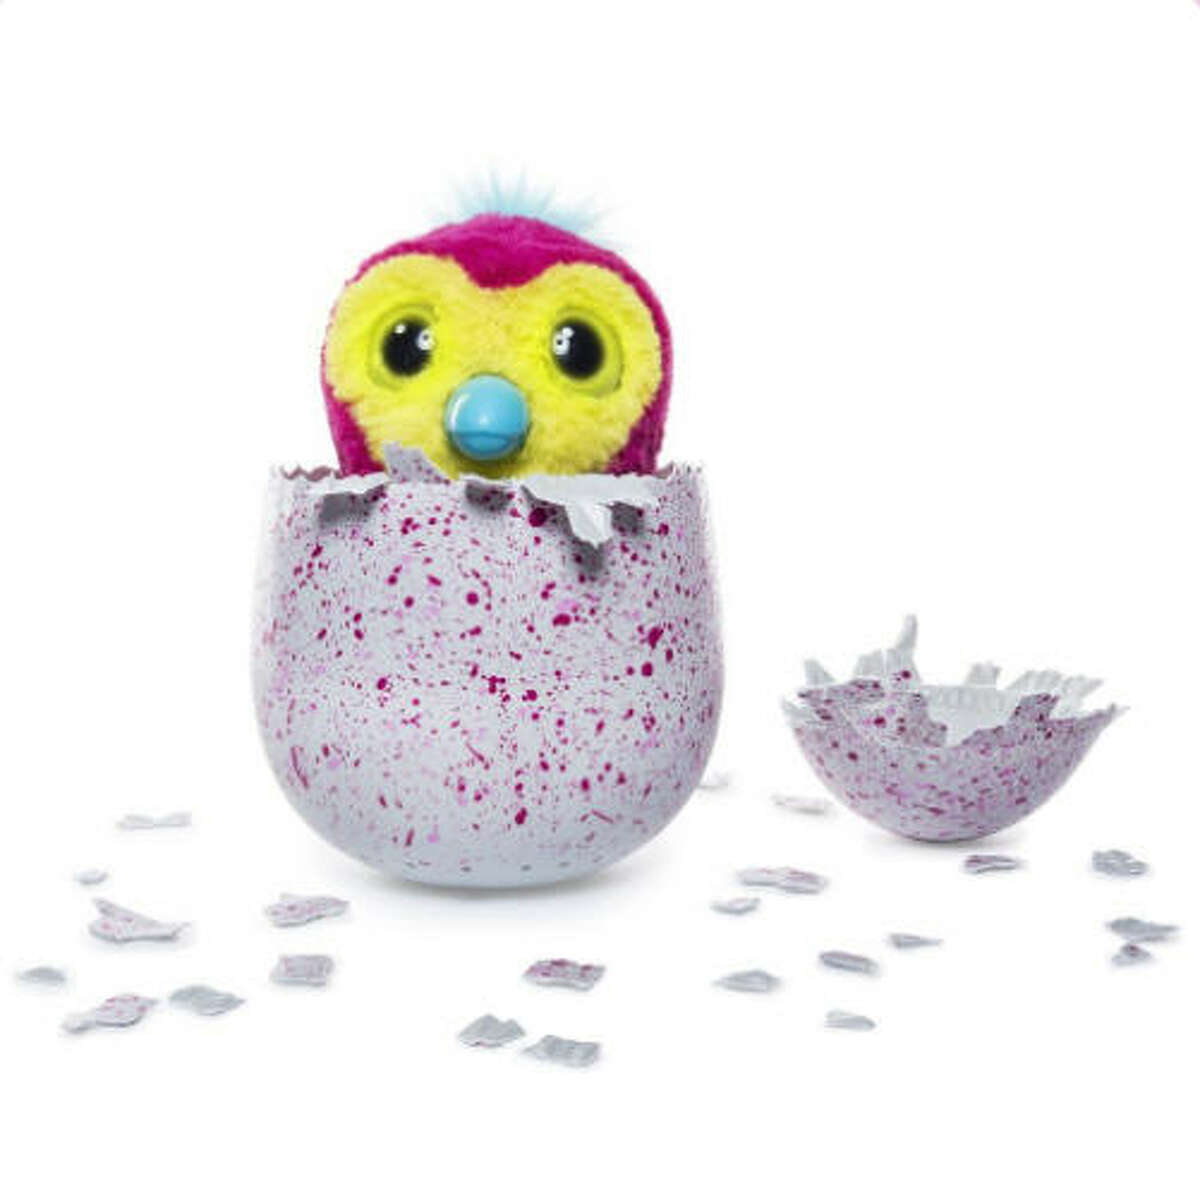 The toy This year's toy that's insanely highly sought is a Hatchimal. Basically, someone hatches their own egg and a toy comes out to play with.